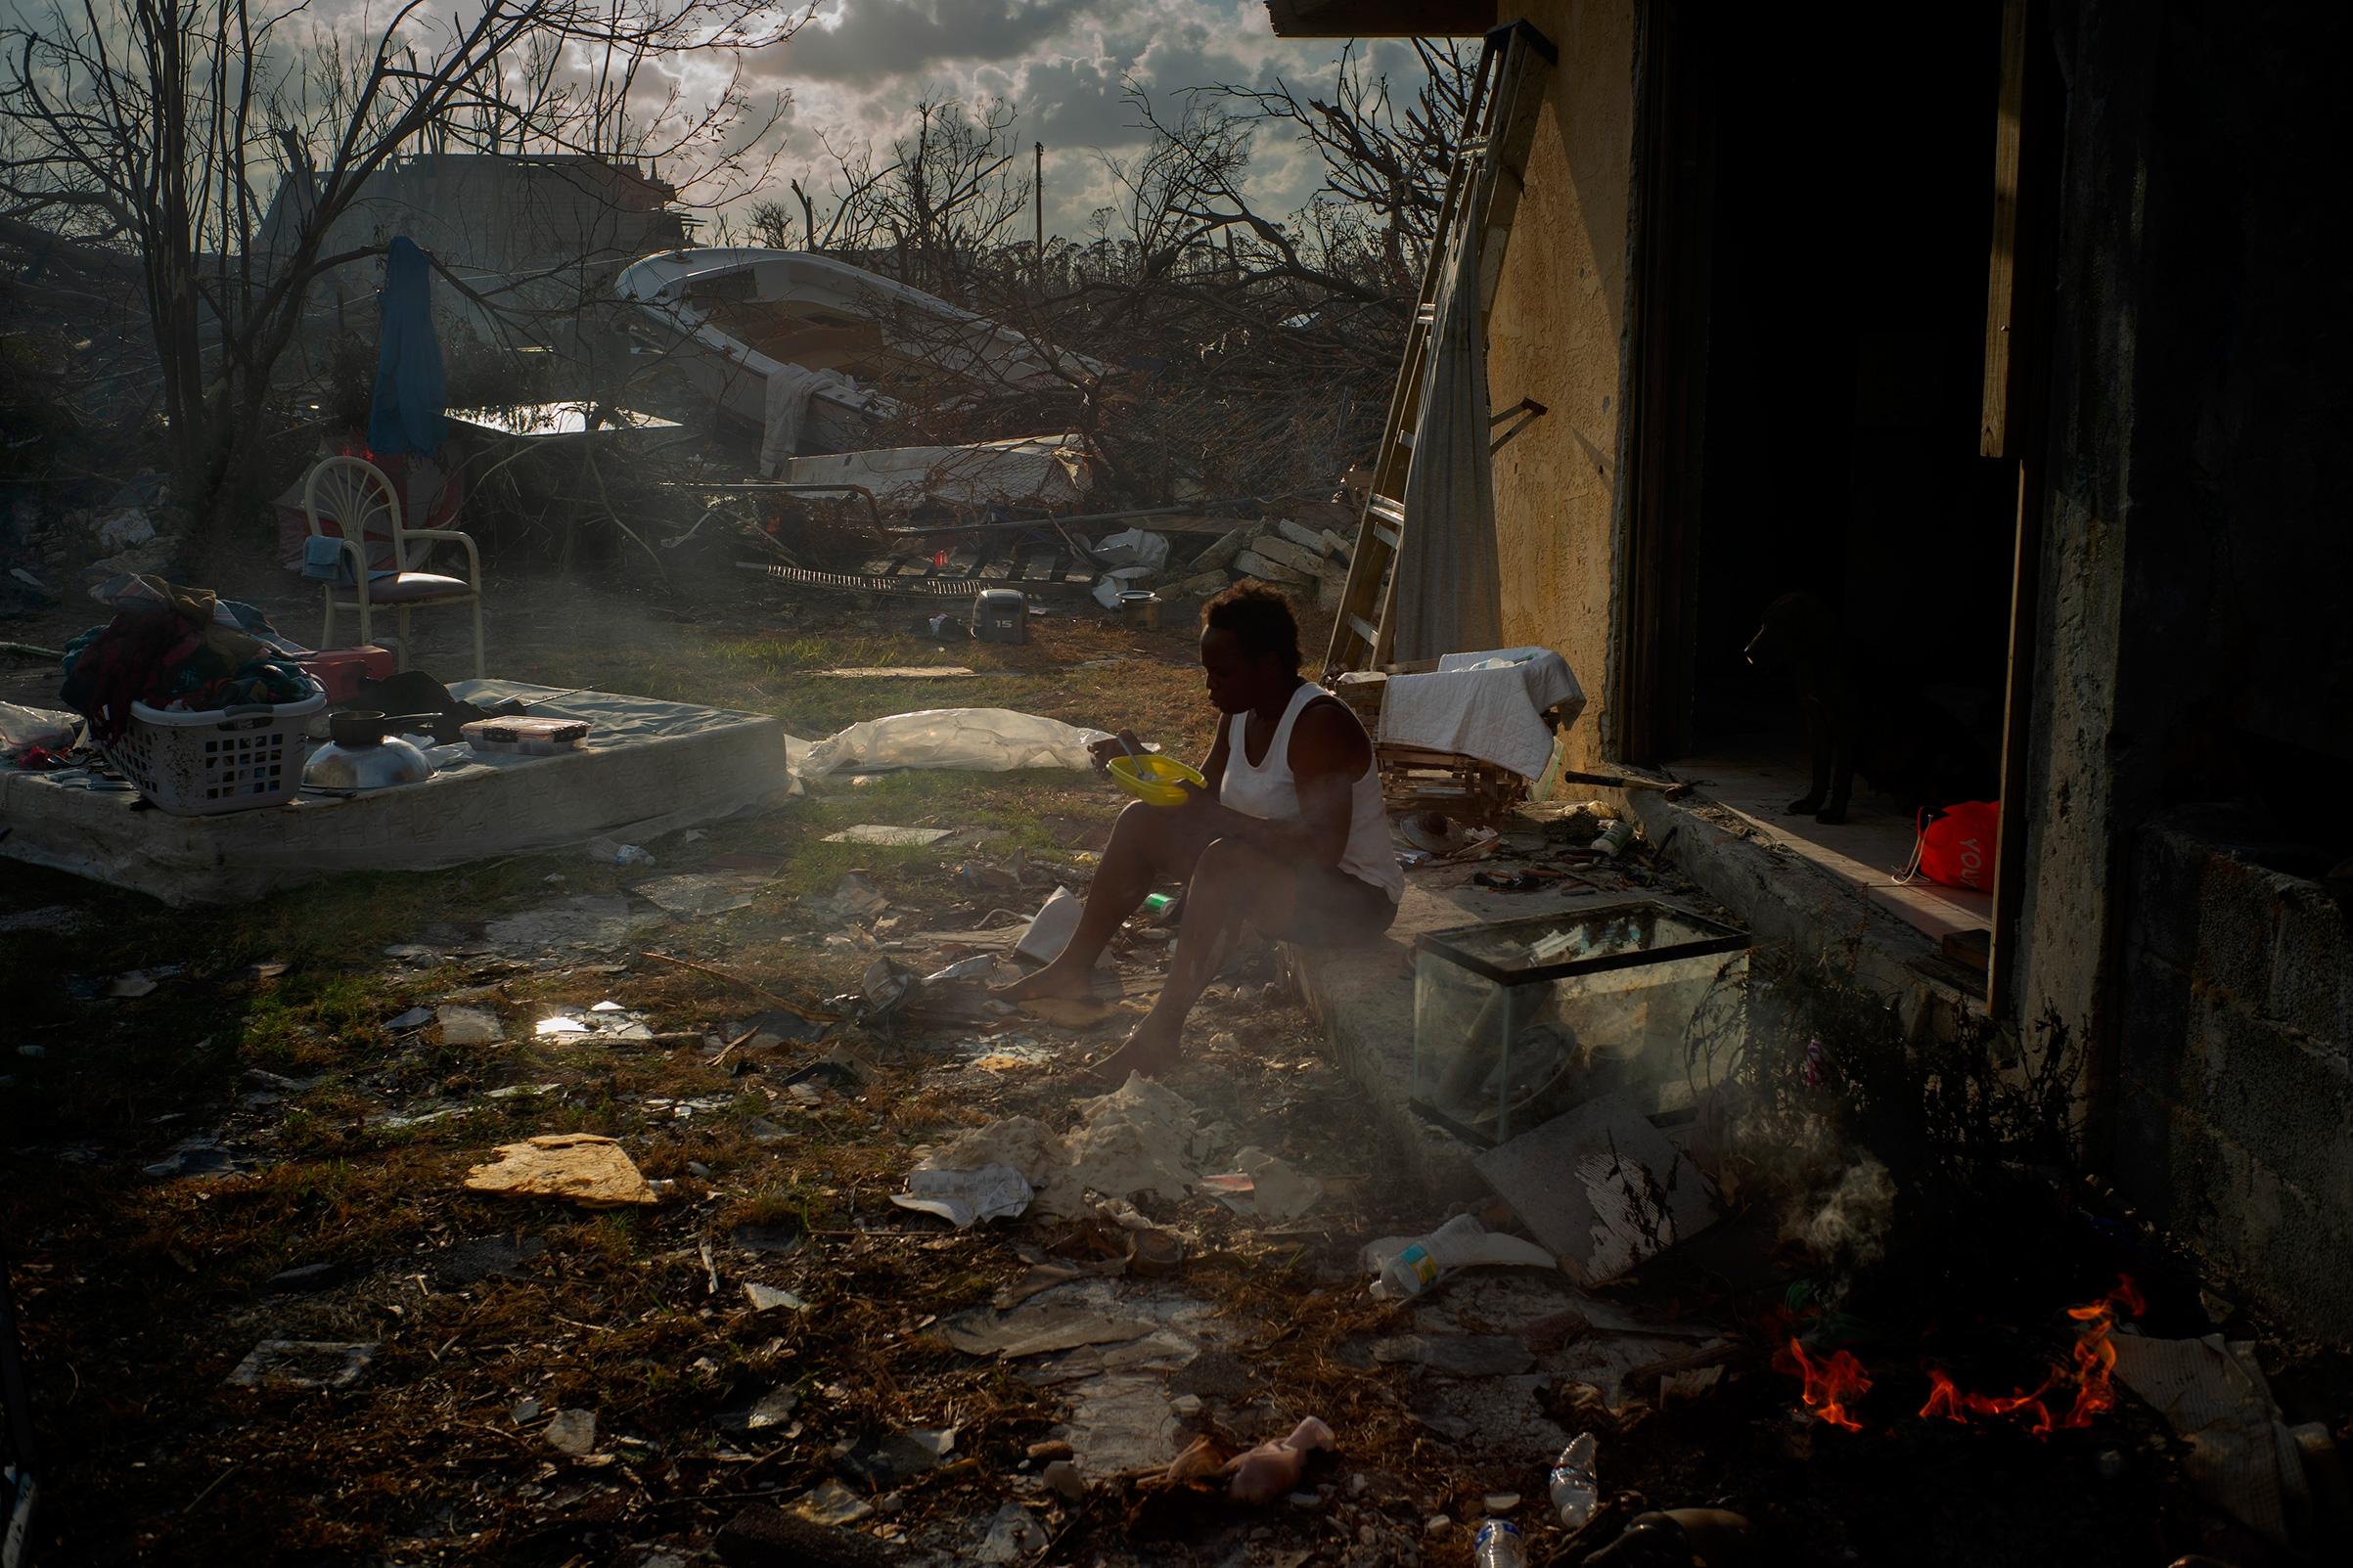 Tereha Davis, 45, eats a meal of rice as she sits among the remains of her shattered home, in the aftermath of Hurricane Dorian in McLean's Town, Grand Bahama, Bahamas, Sept. 11, 2019. She and others said they had not seen any government officials and have only received food and water from nonprofit organizations.